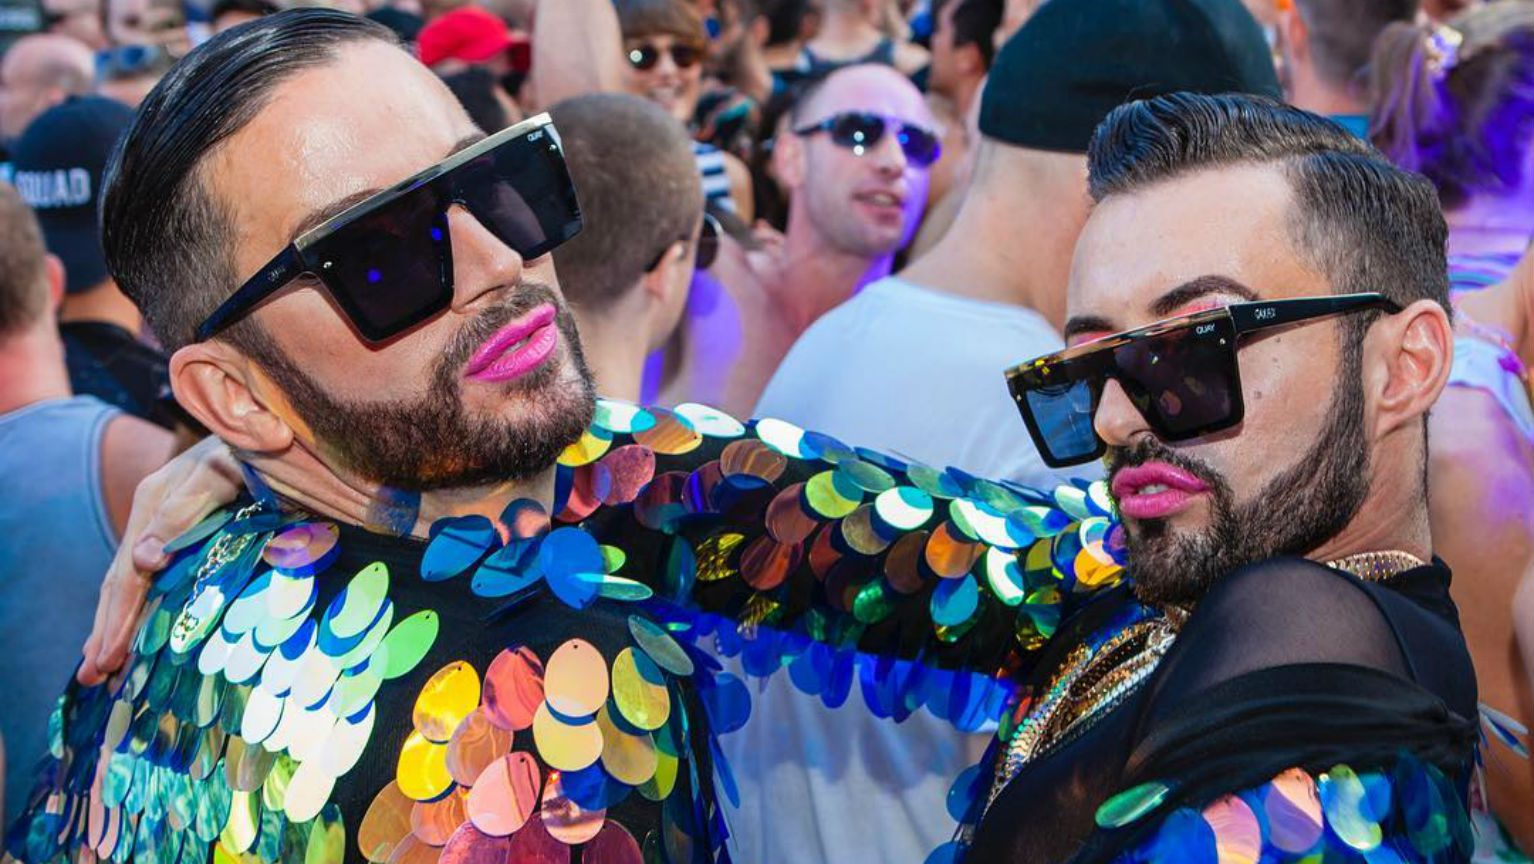 Two men at Mardi Gras in rainbow sequinned jackets